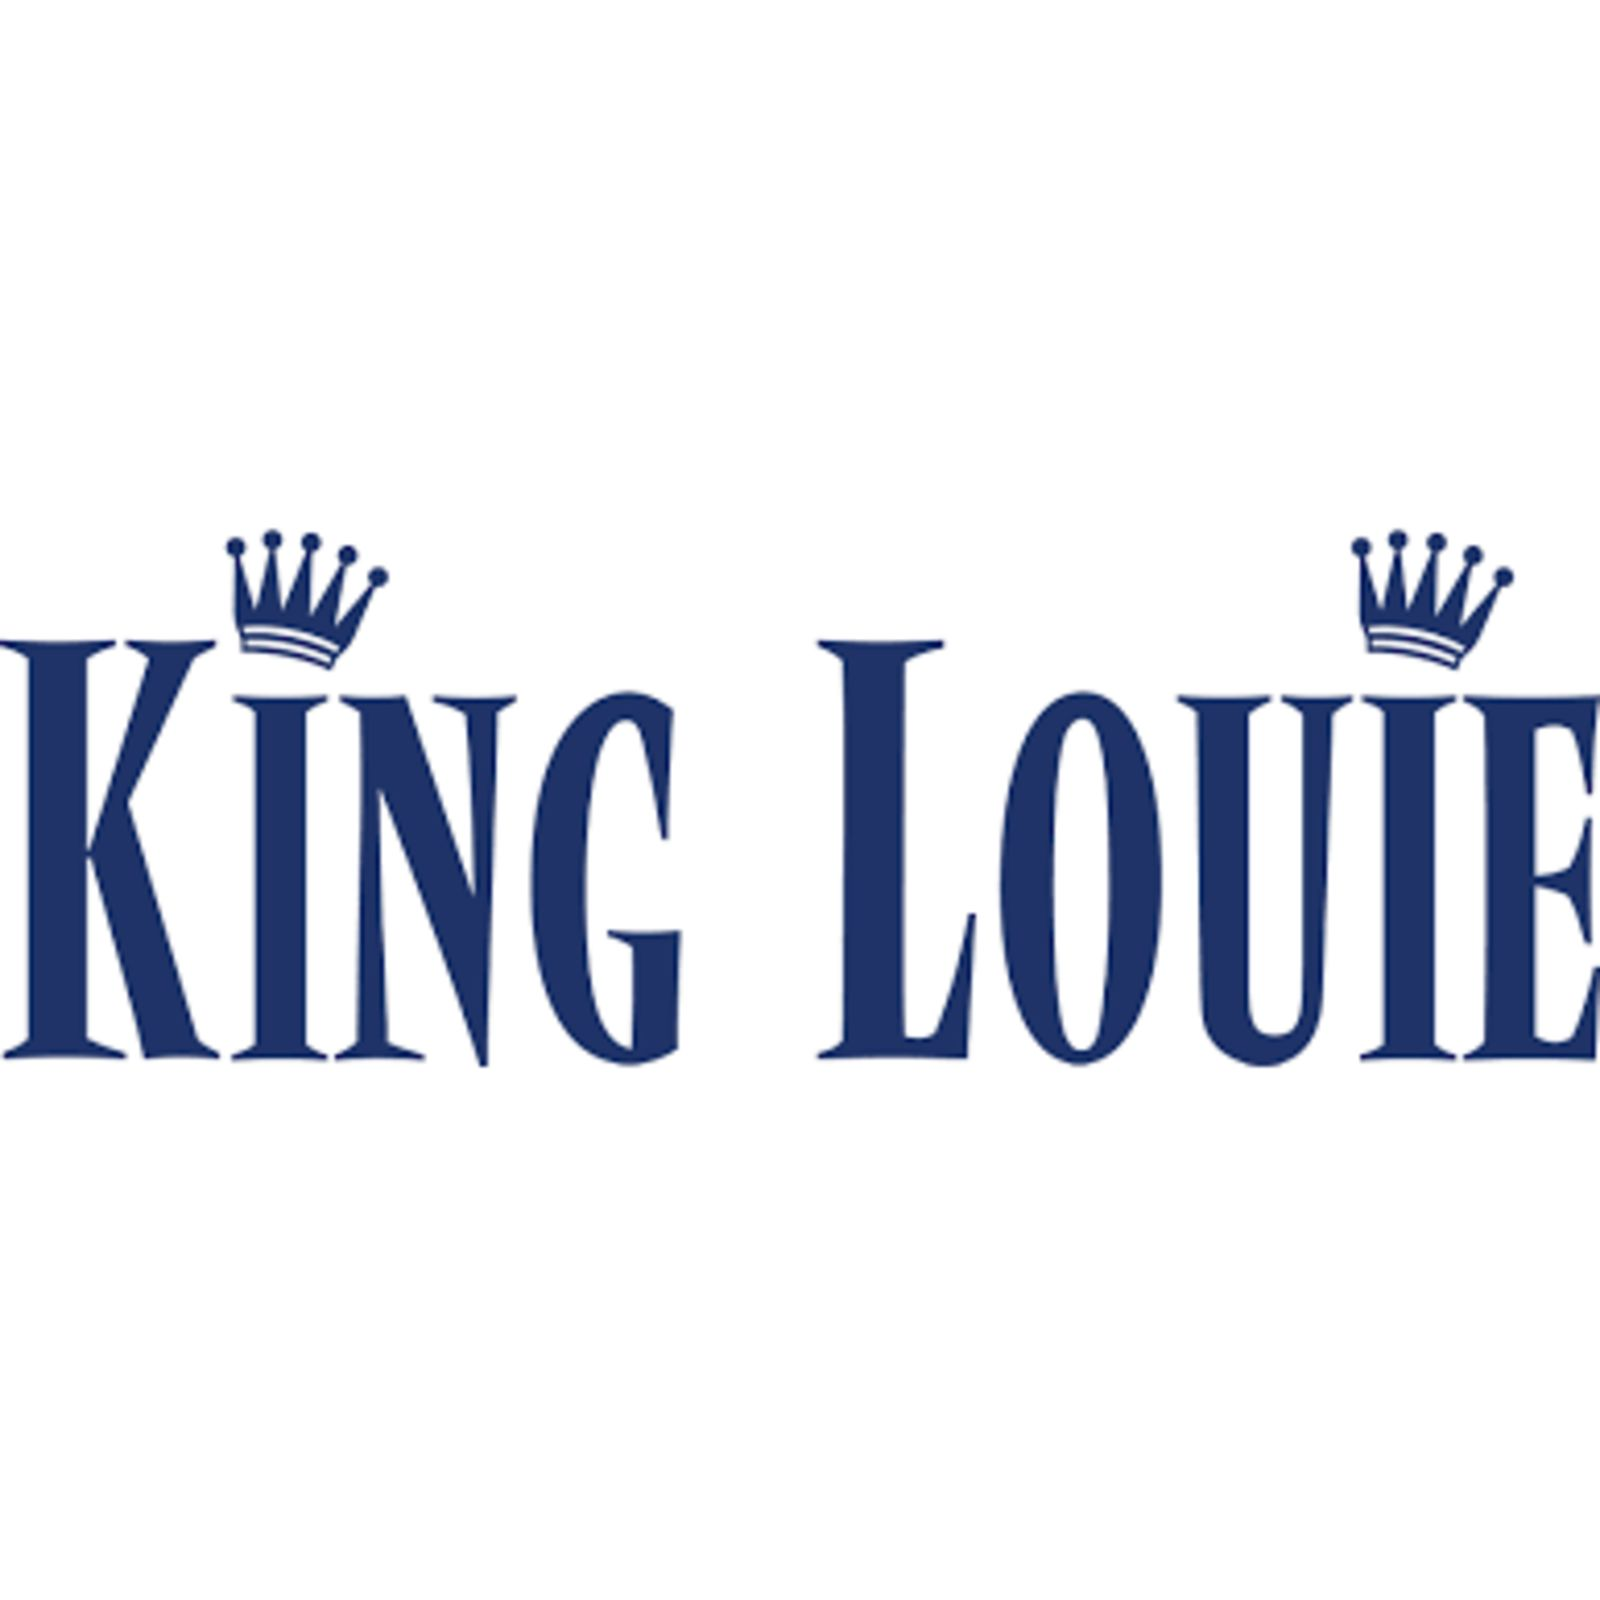 Petit Louie by KING LOUIE